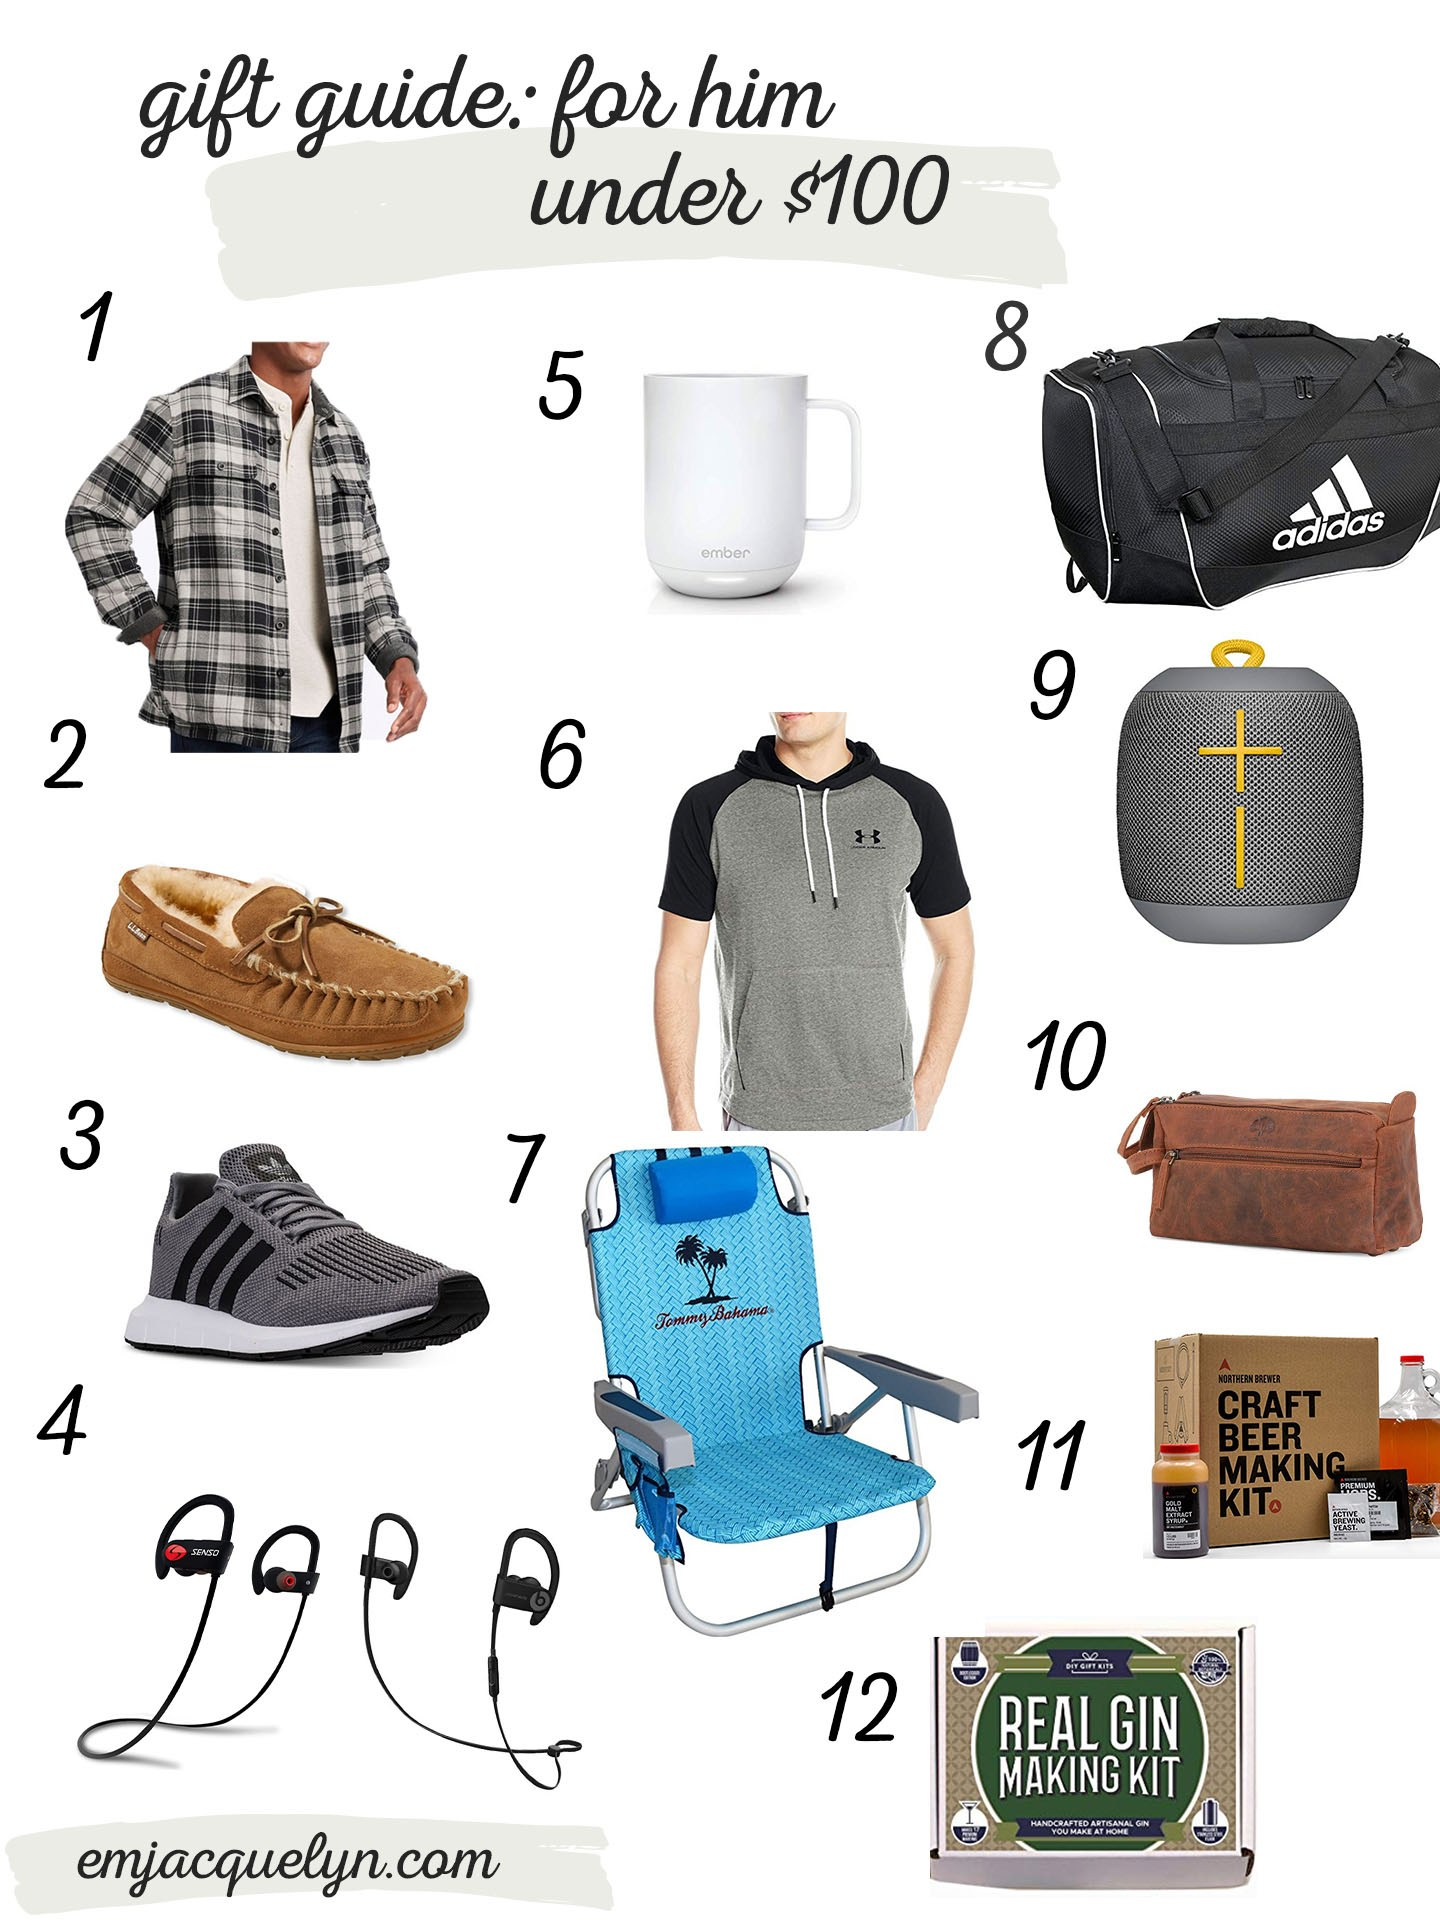 gift ideas for him under $100